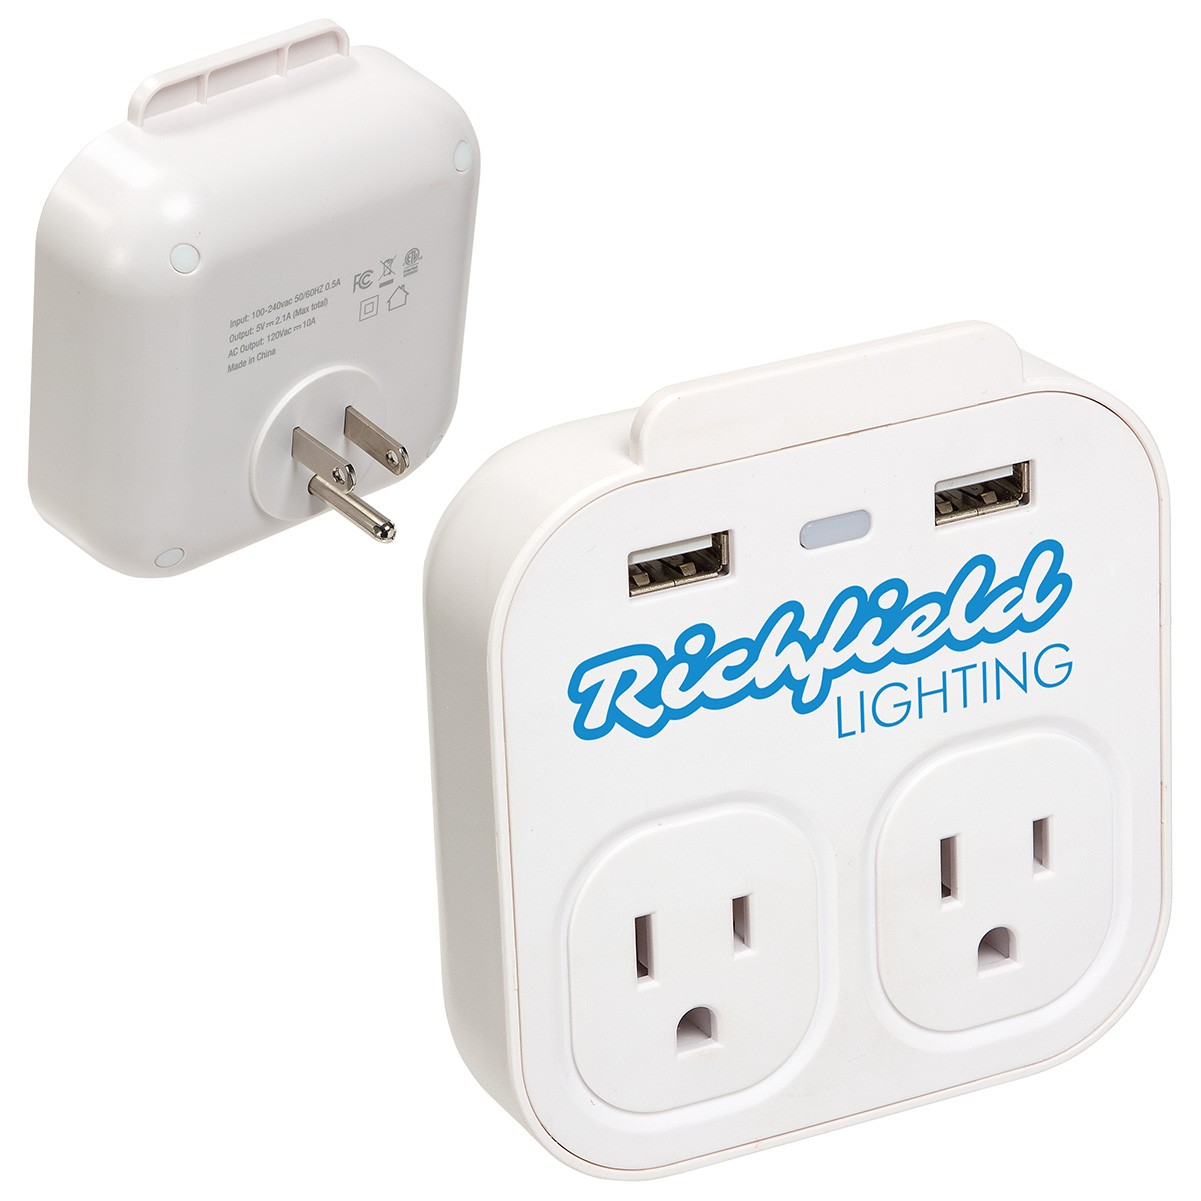 wall charger and phone holder with logo